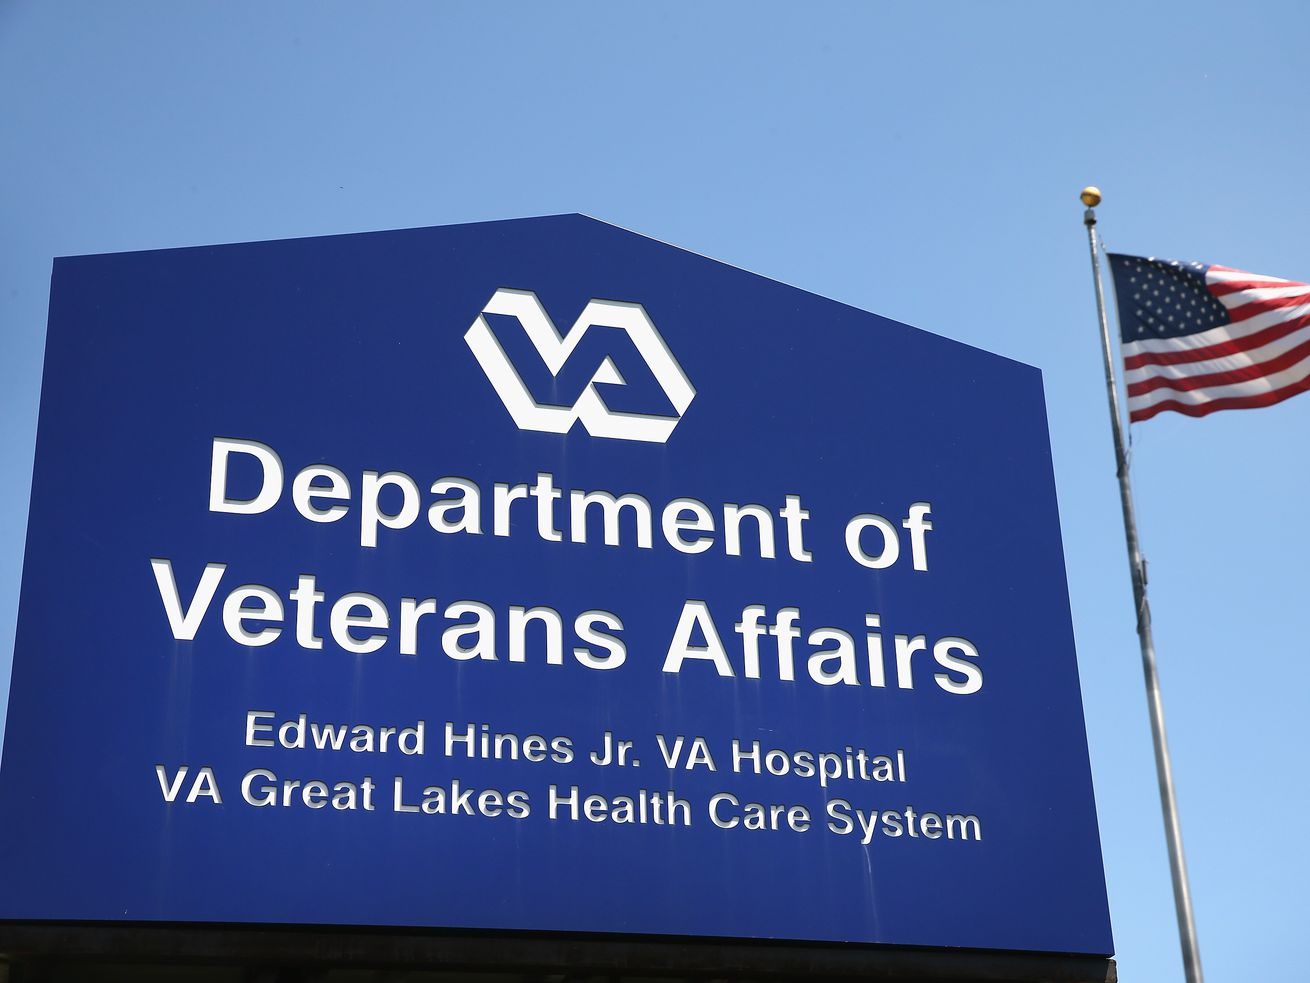 A hospital run by the Department of Veterans Affairs in Illinois.